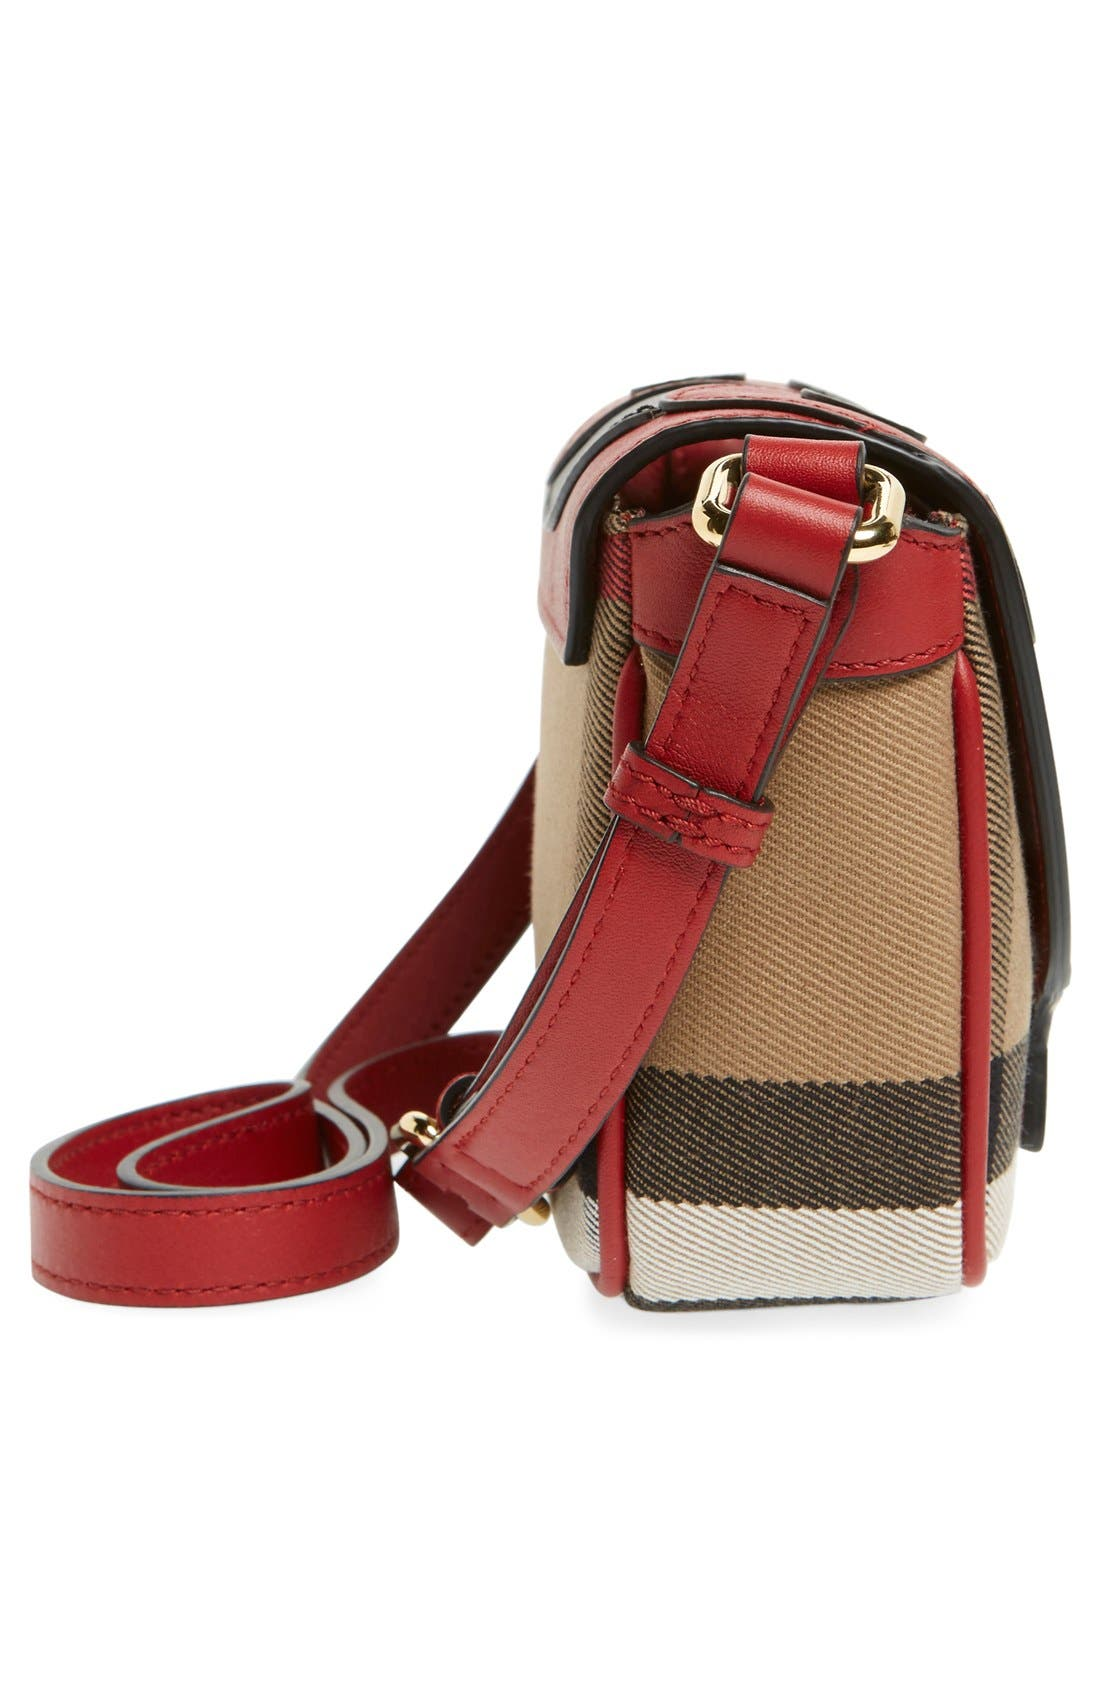 Alternate Image 3  - Burberry 'Ladybird' Cotton & Leather Crossbody Bag (Girls)